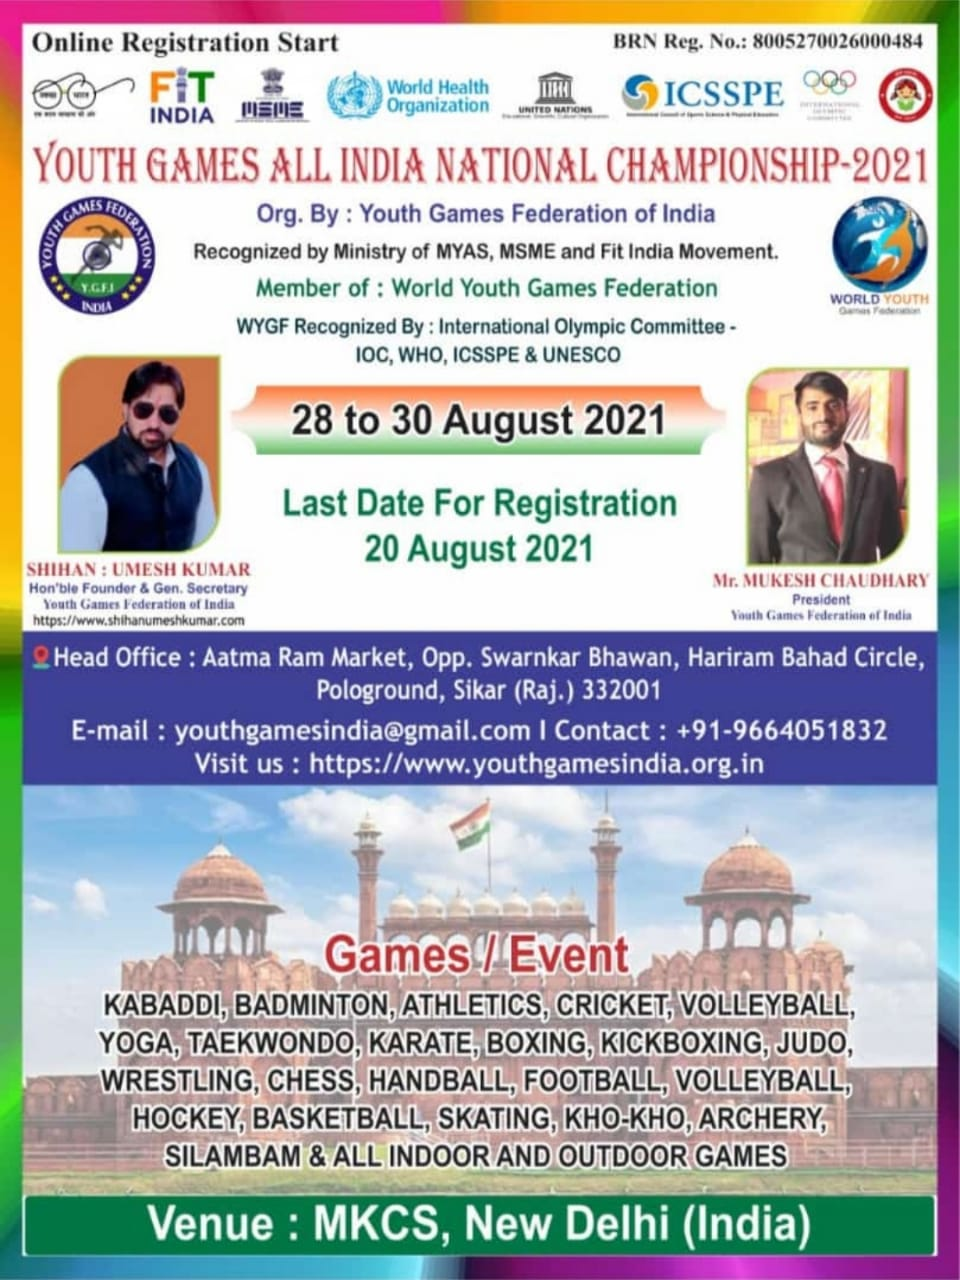 YOUTH GAMES ALL INDIA NATIONAL CHAMPIONSHIP - 2021